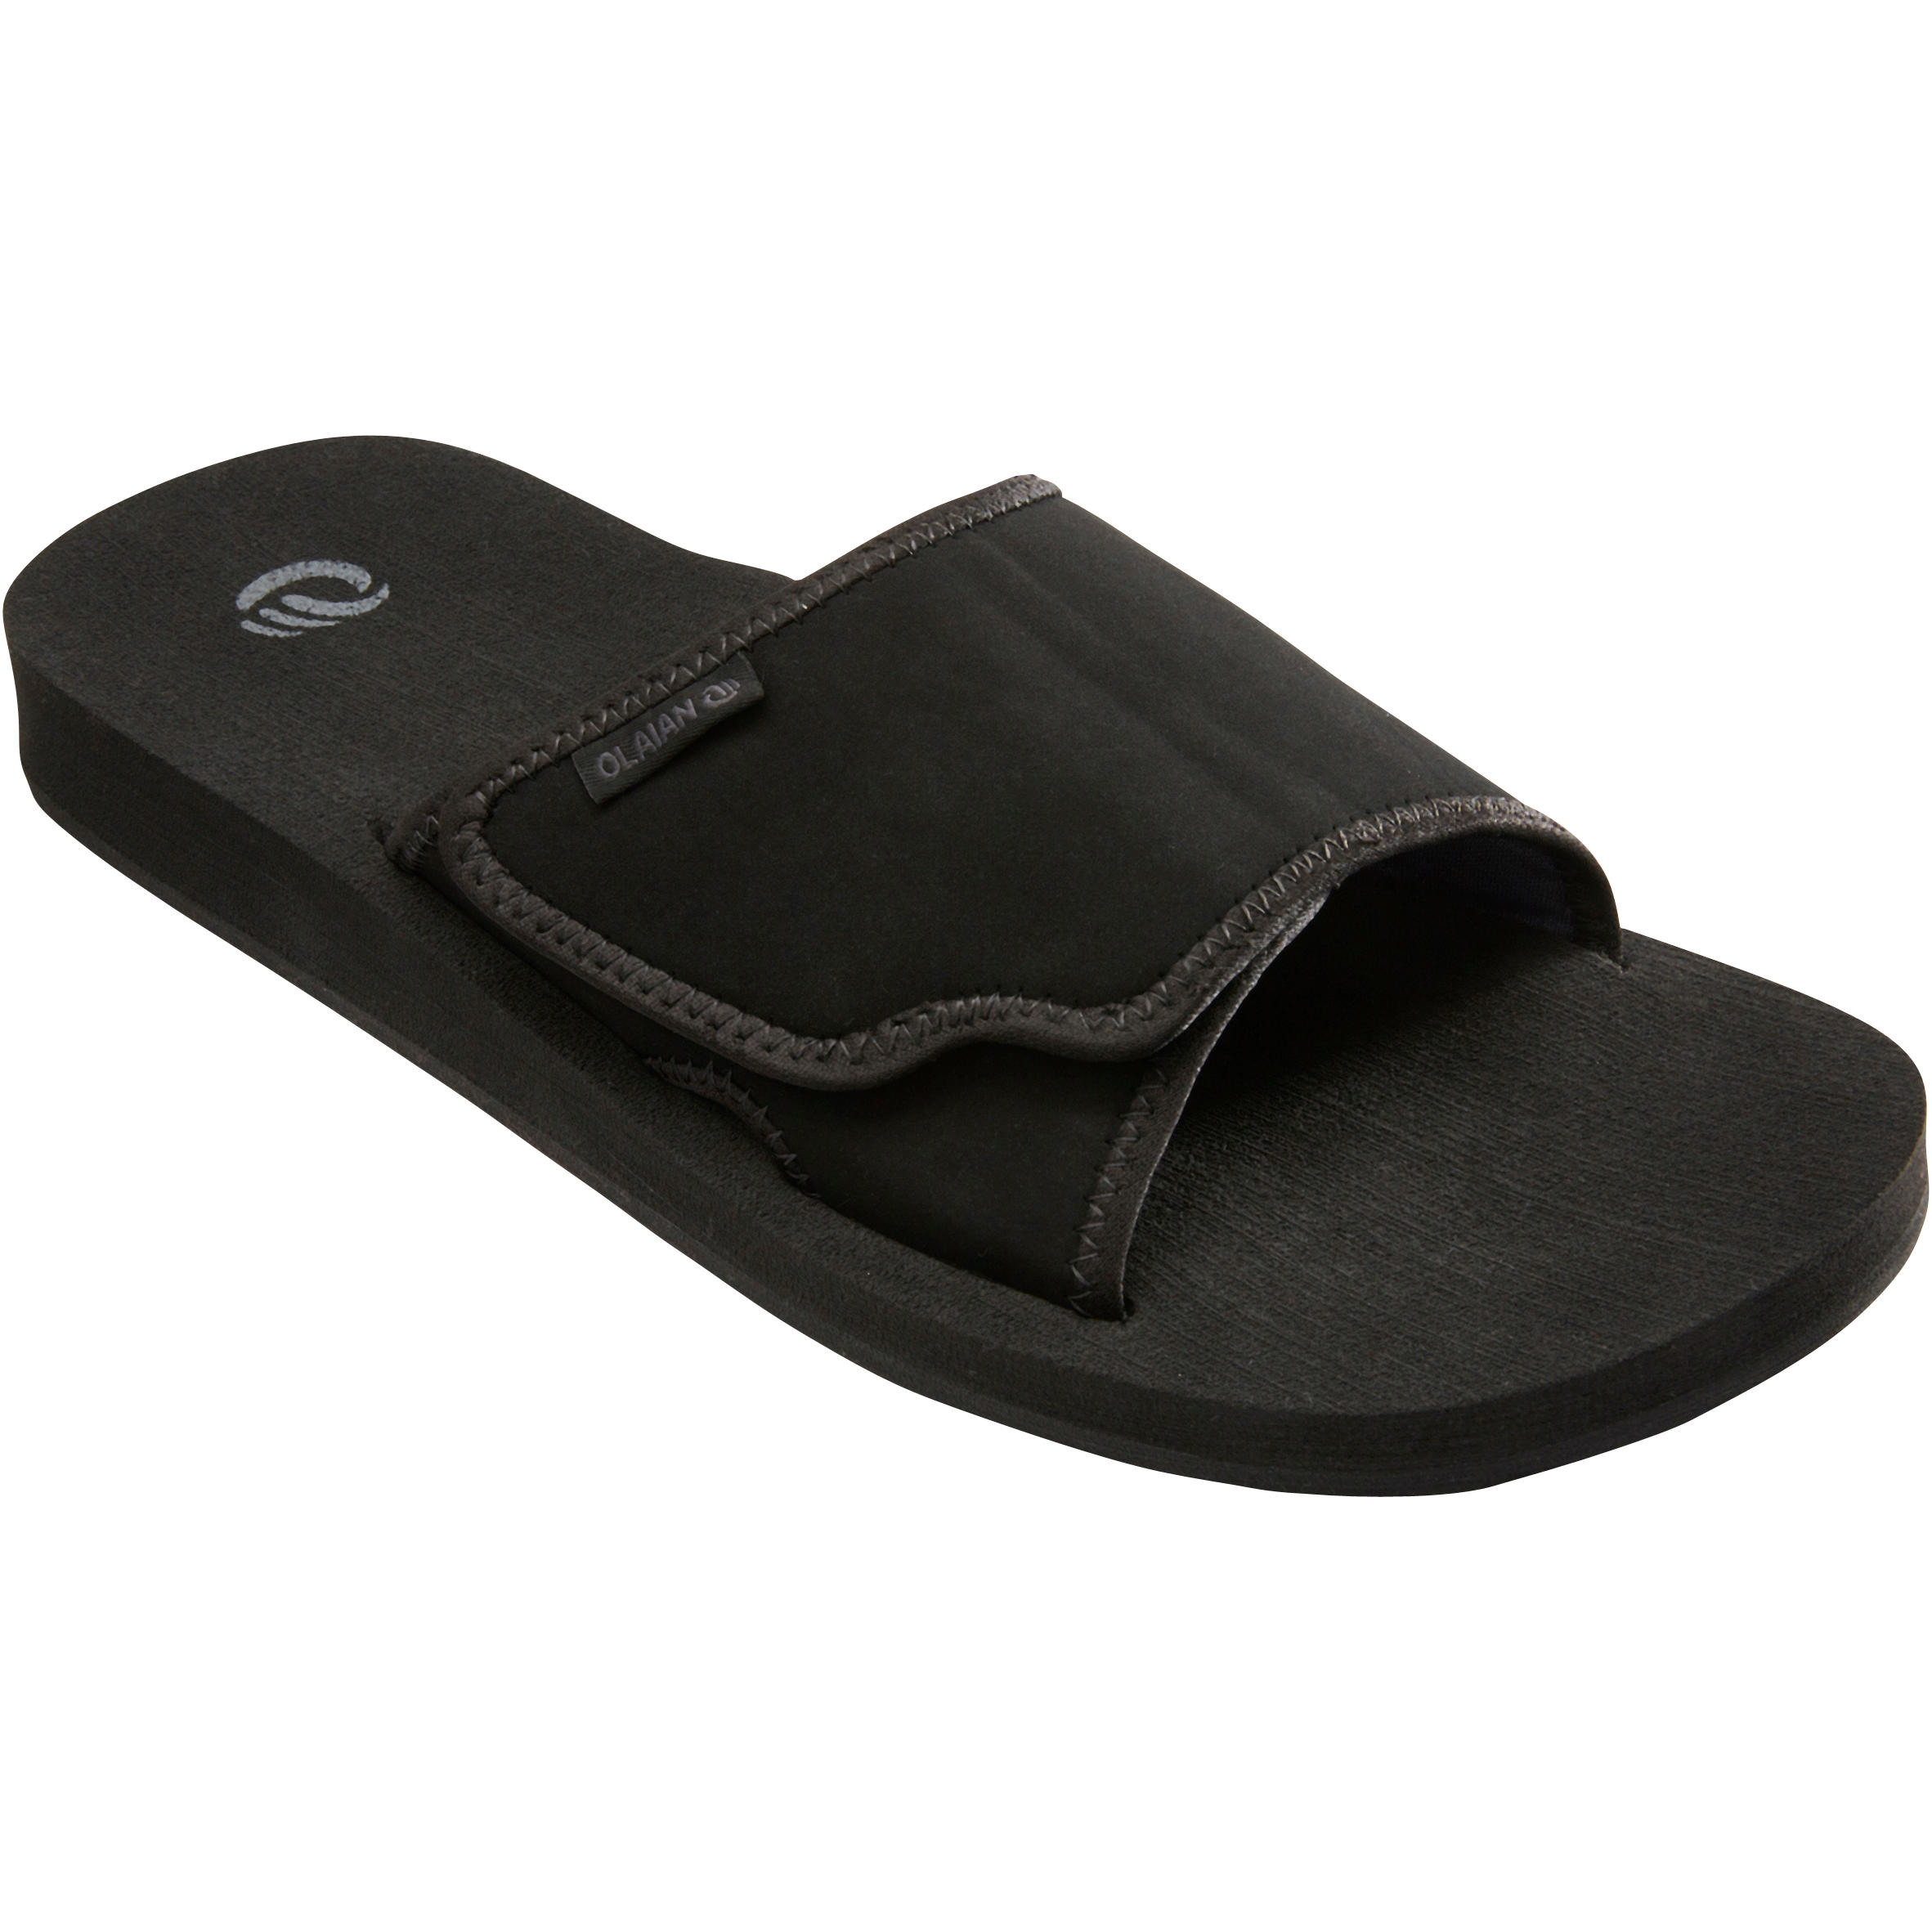 SLAP 550 M Men's Flip-Flops - Black